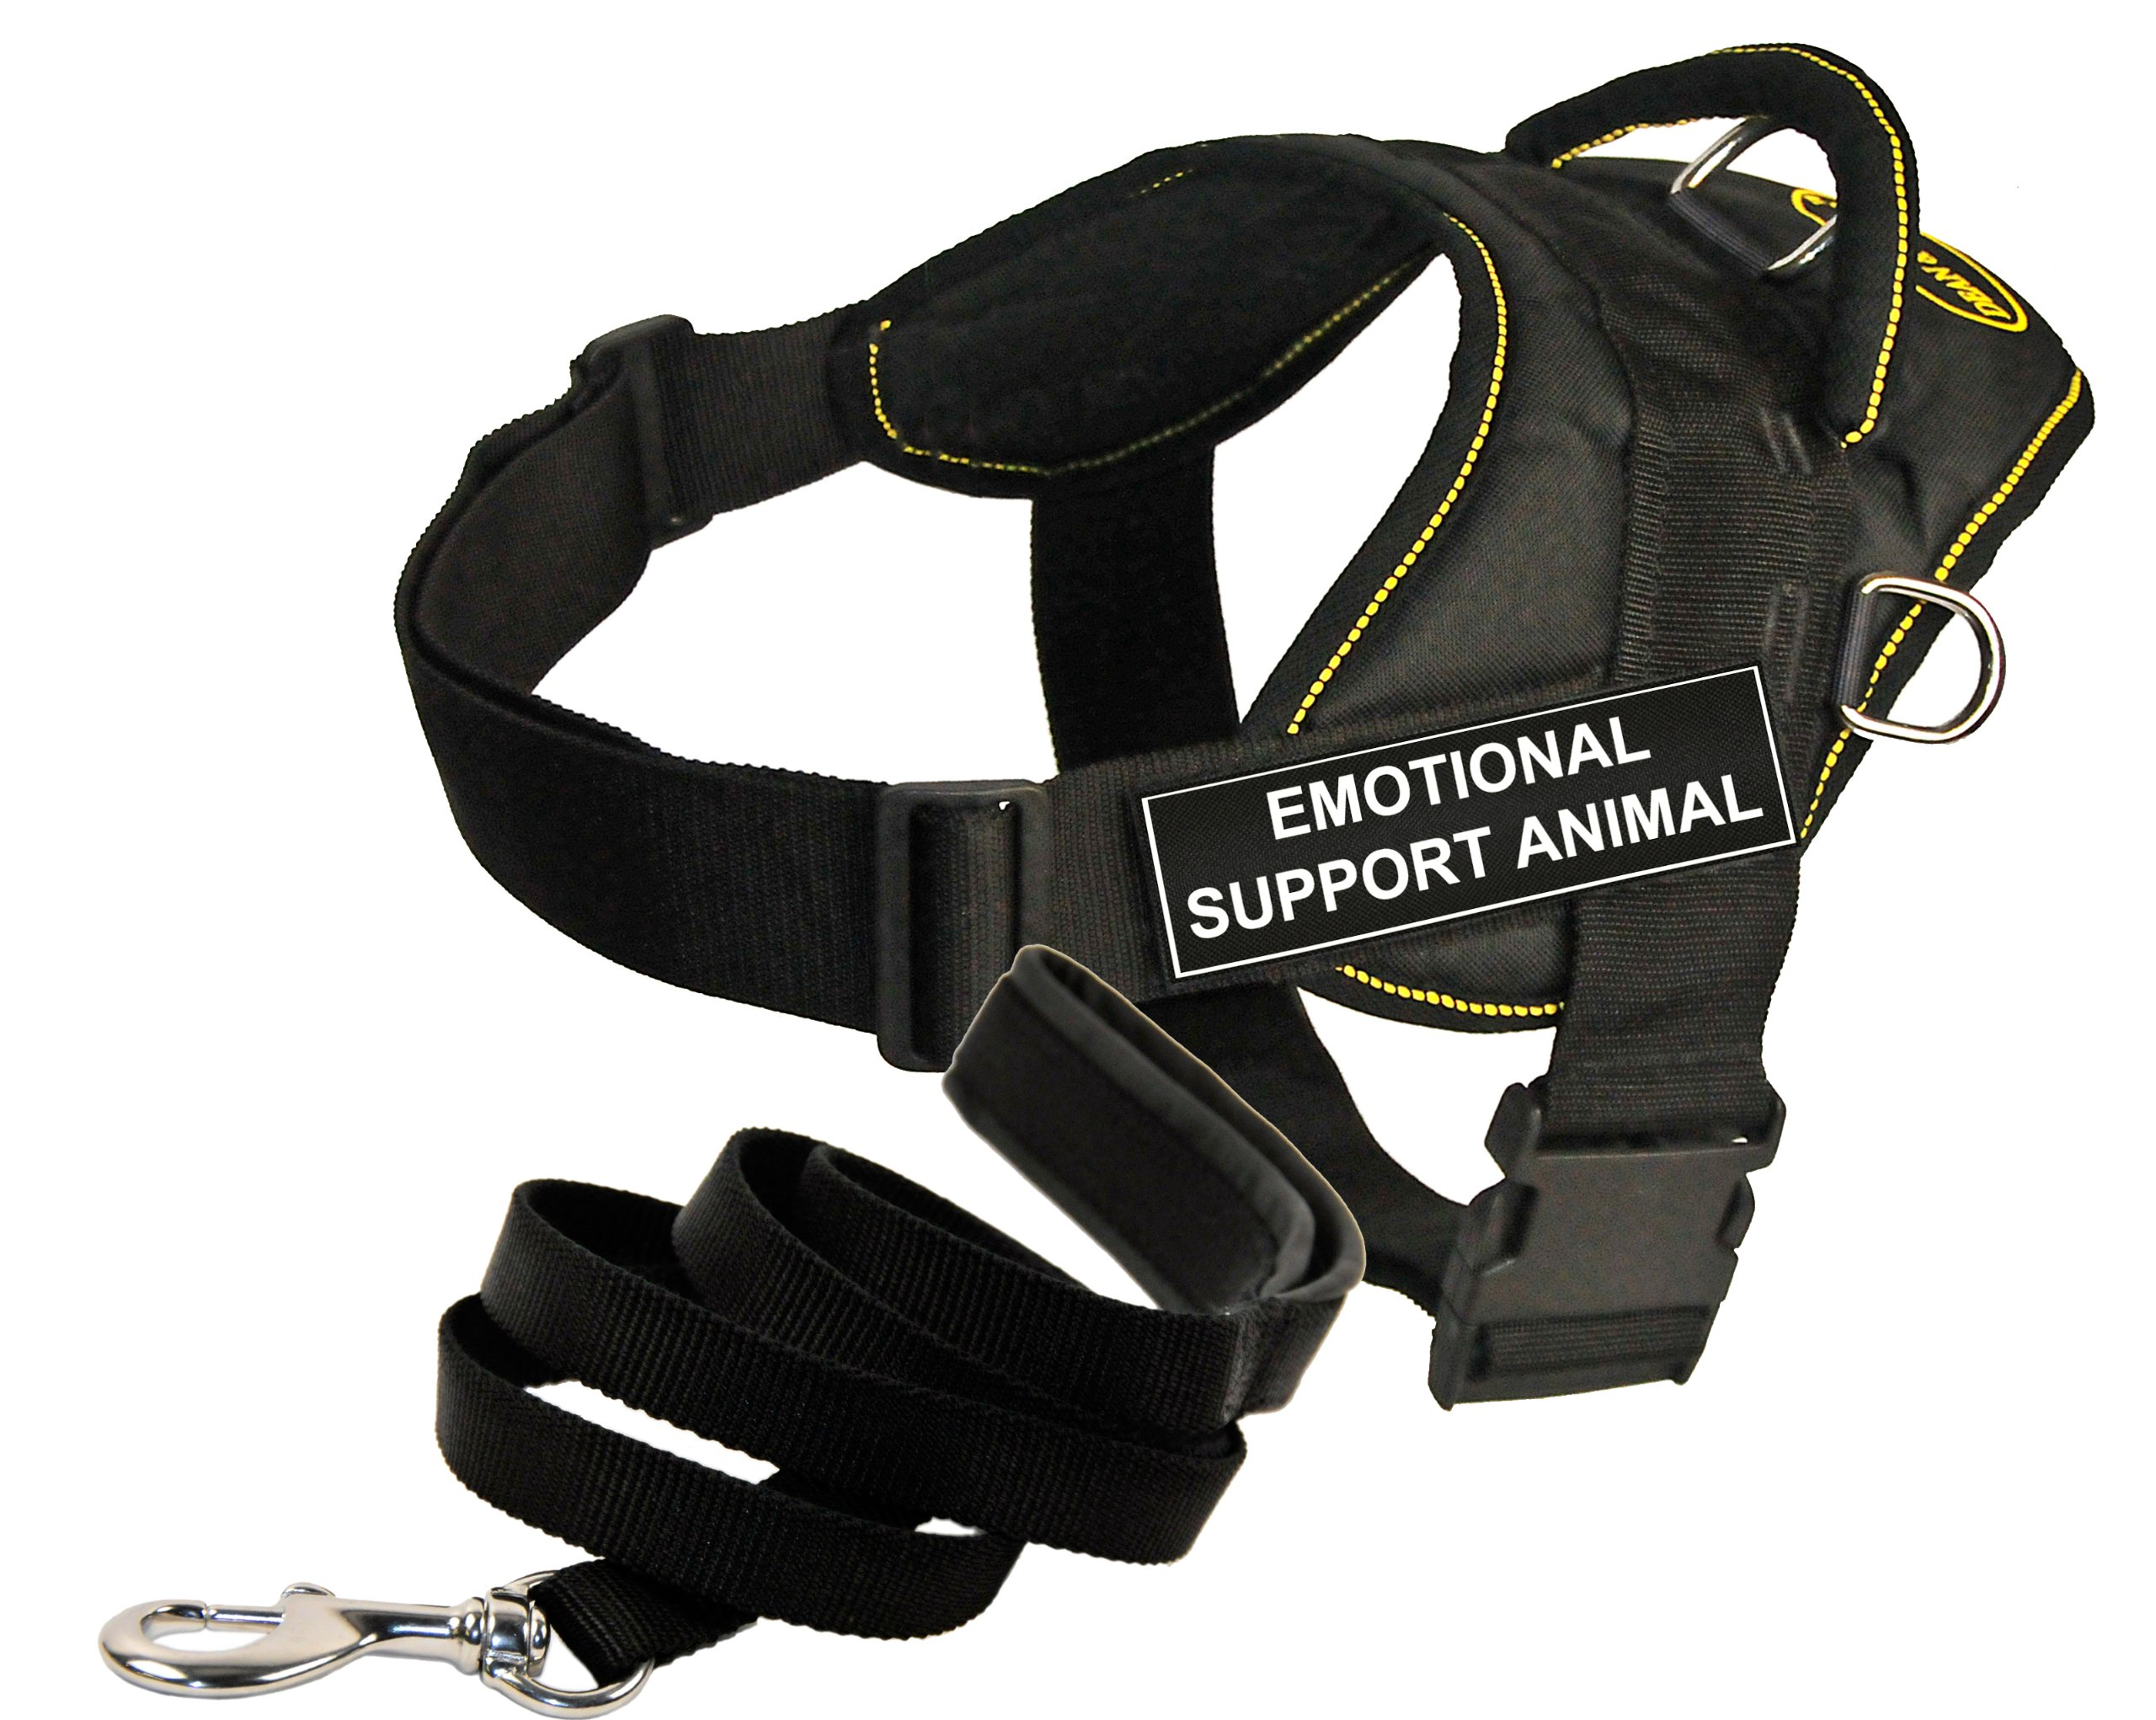 Dean and Tyler Bundle - One ''DT Fun Works'' Harness, Emotional Support Animal, Yellow Trim, XXS + One ''Padded Puppy'' Leash, 6 FT Stainless Snap - Black